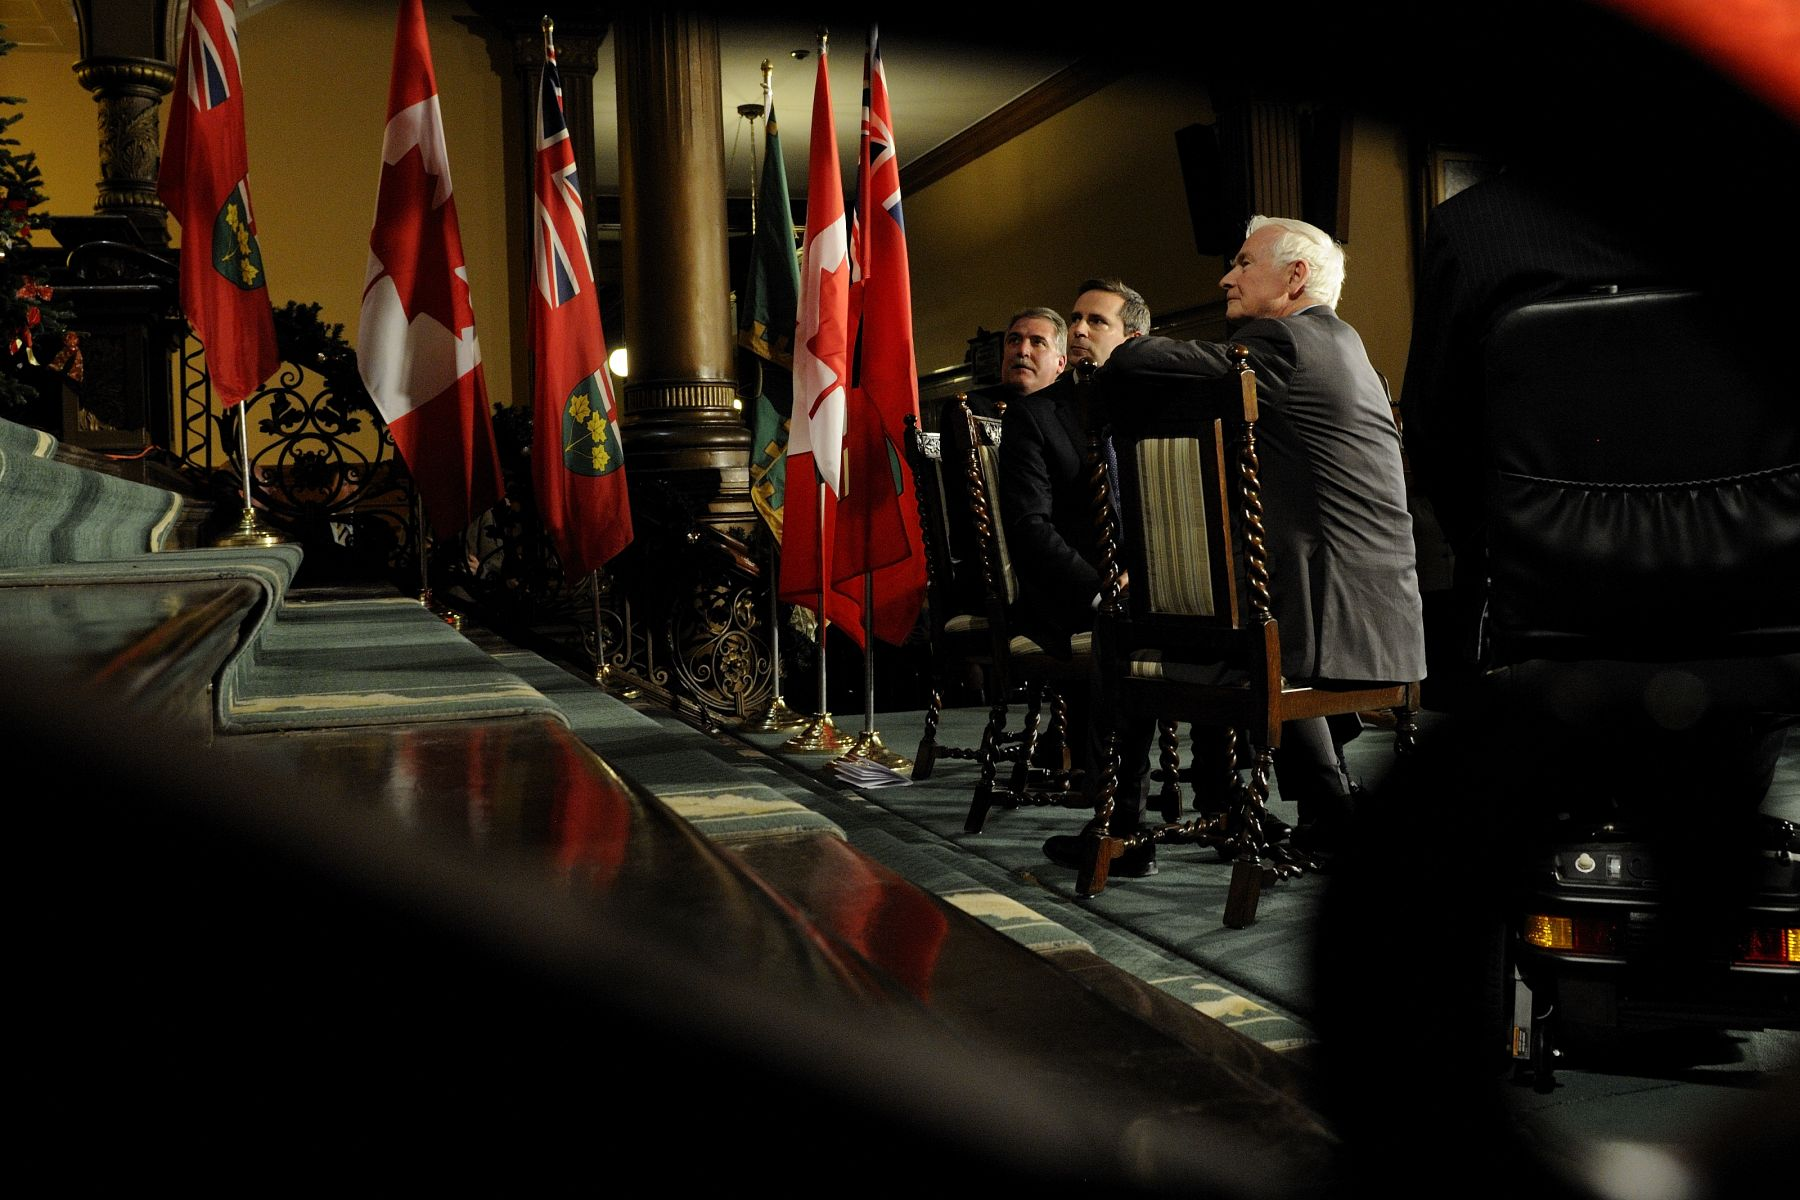 The Governor General, the Speaker of the Legislative Assembly and Premier of Ontario all turned around to watch the choir sing.